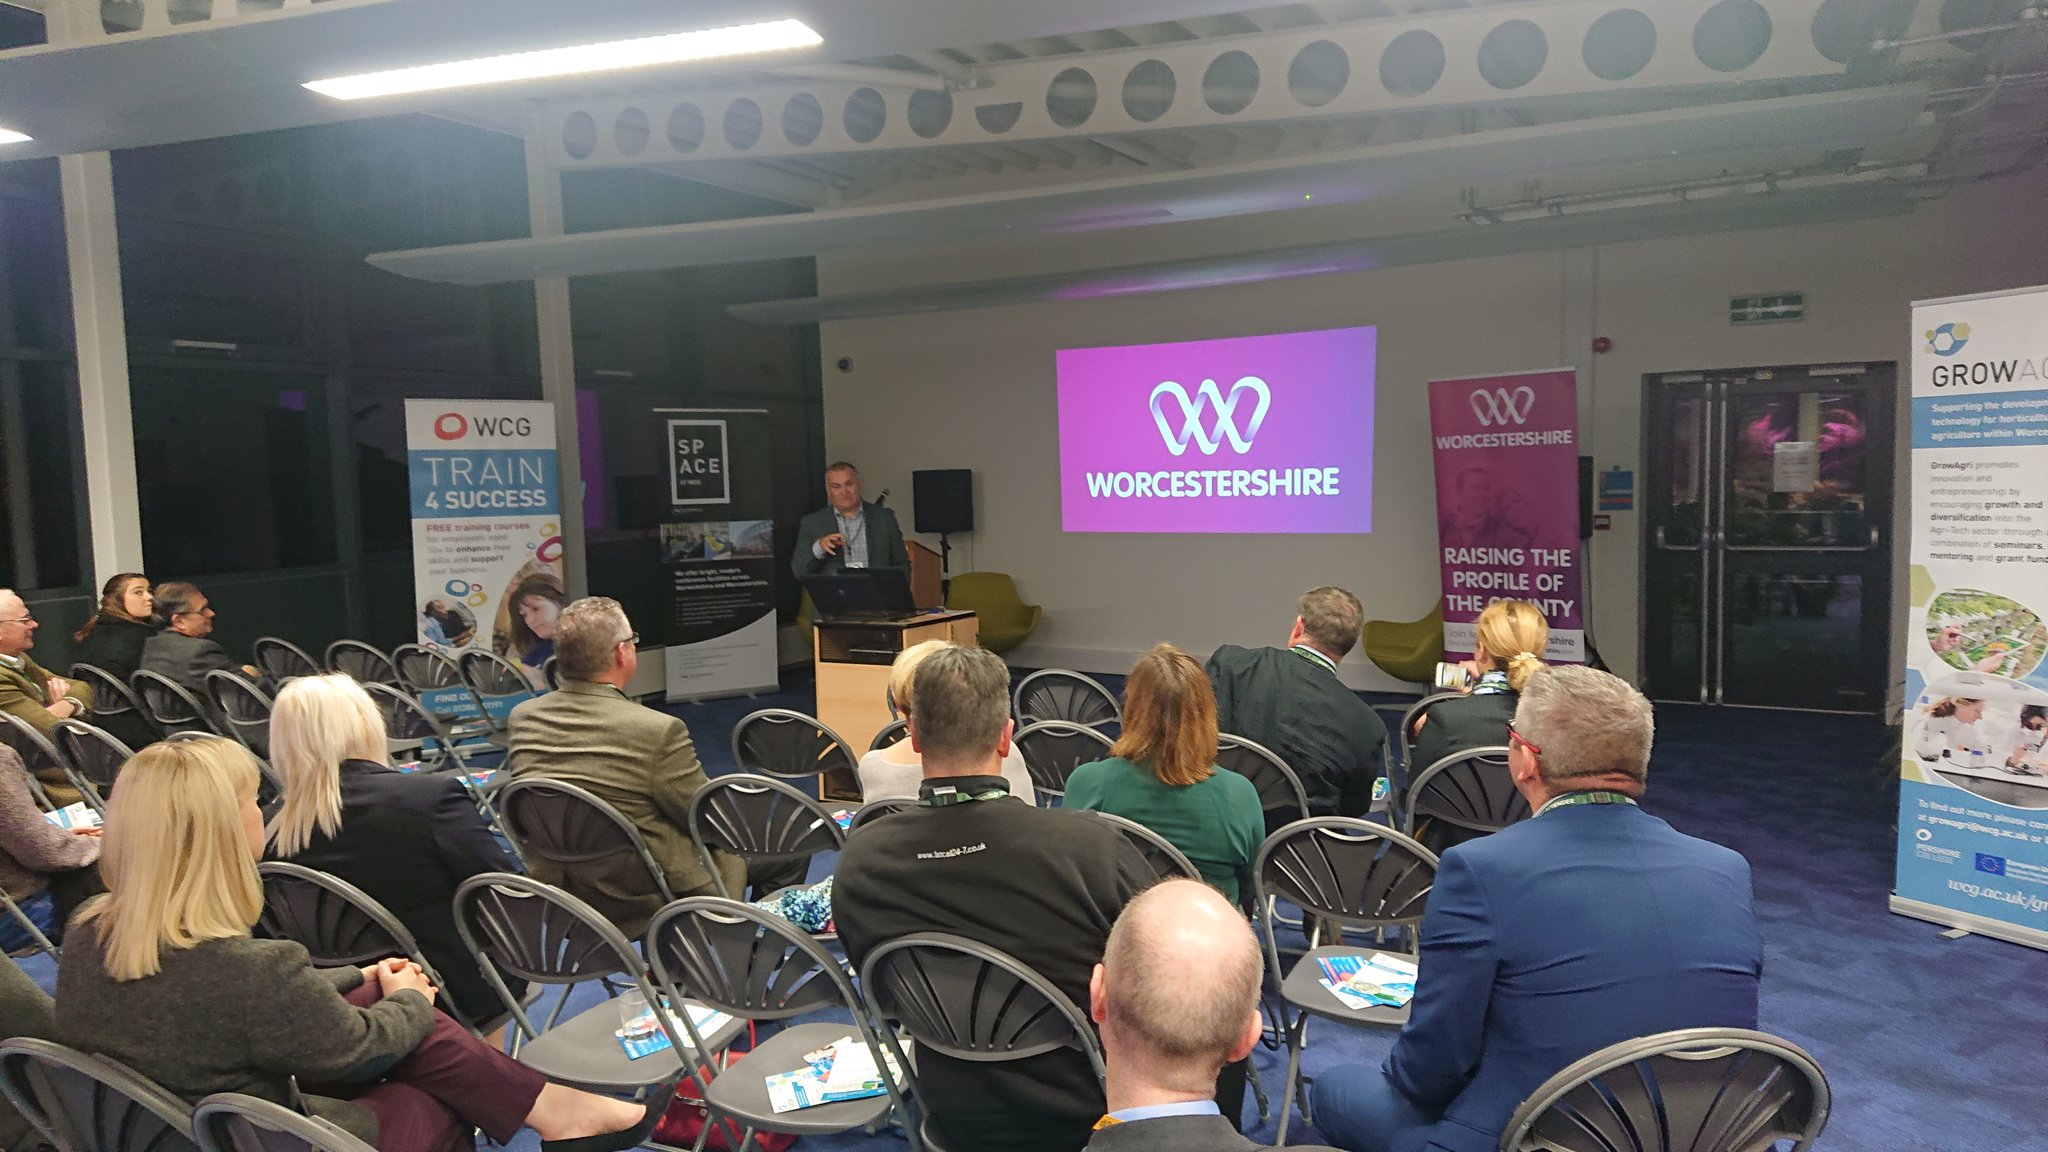 Worcestershire 1000 Meets at Pershore College